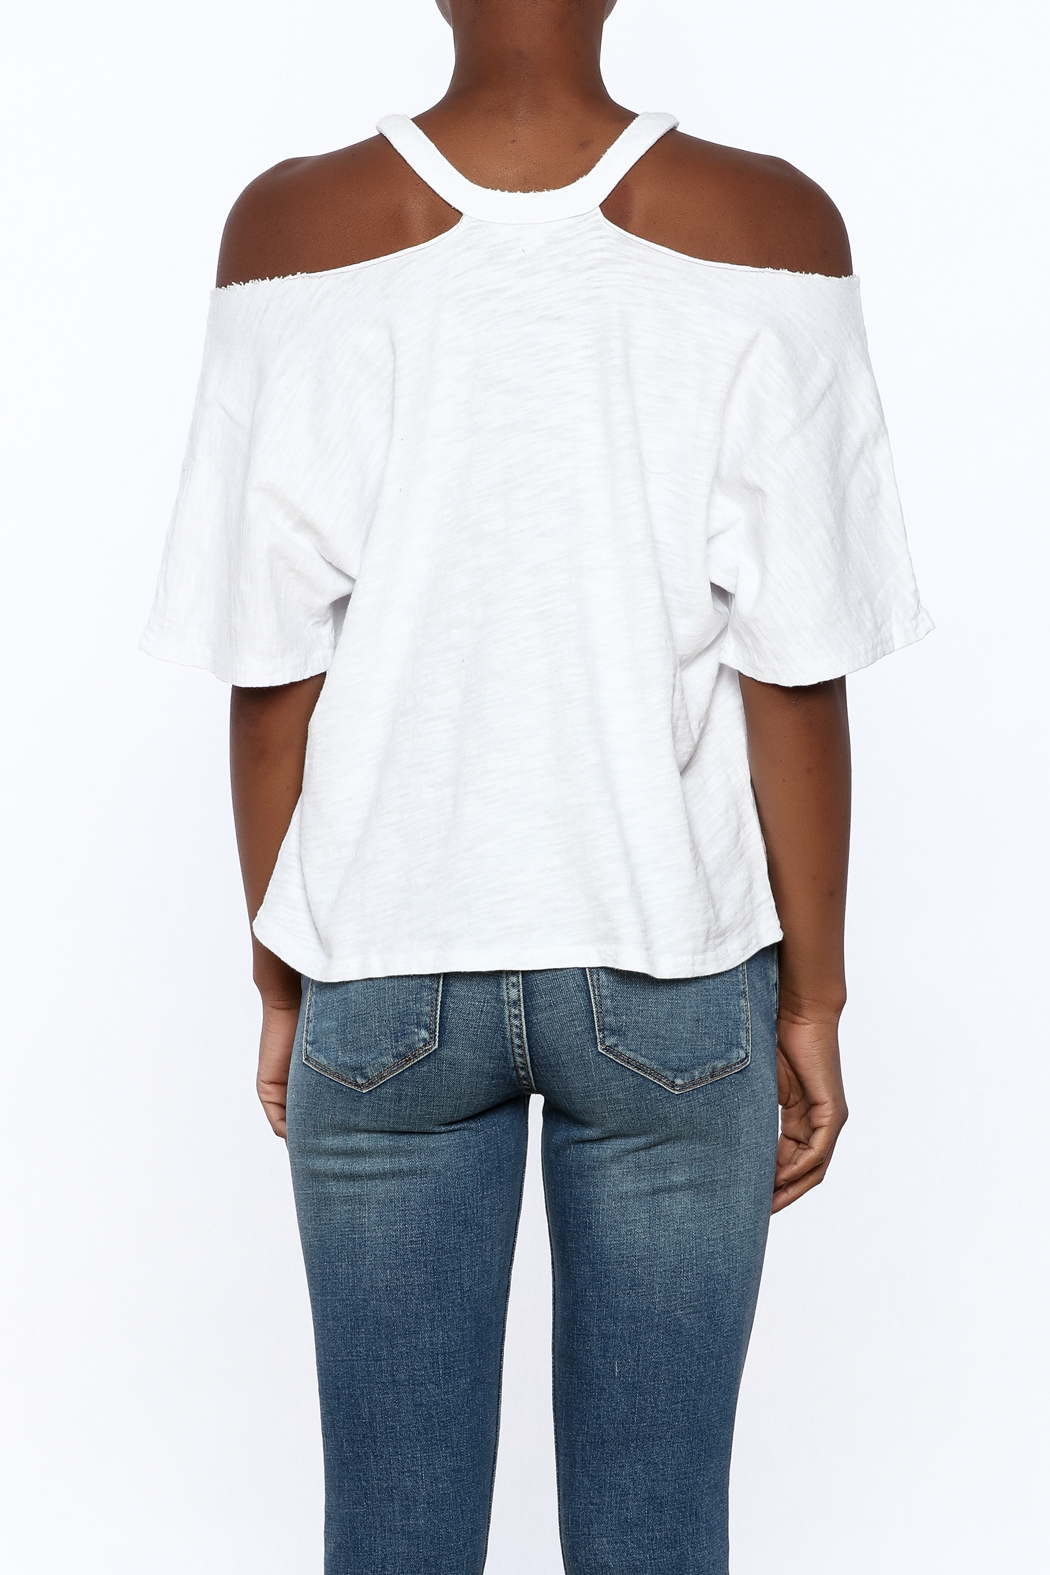 Honey Punch White Distressed Tee - Back Cropped Image